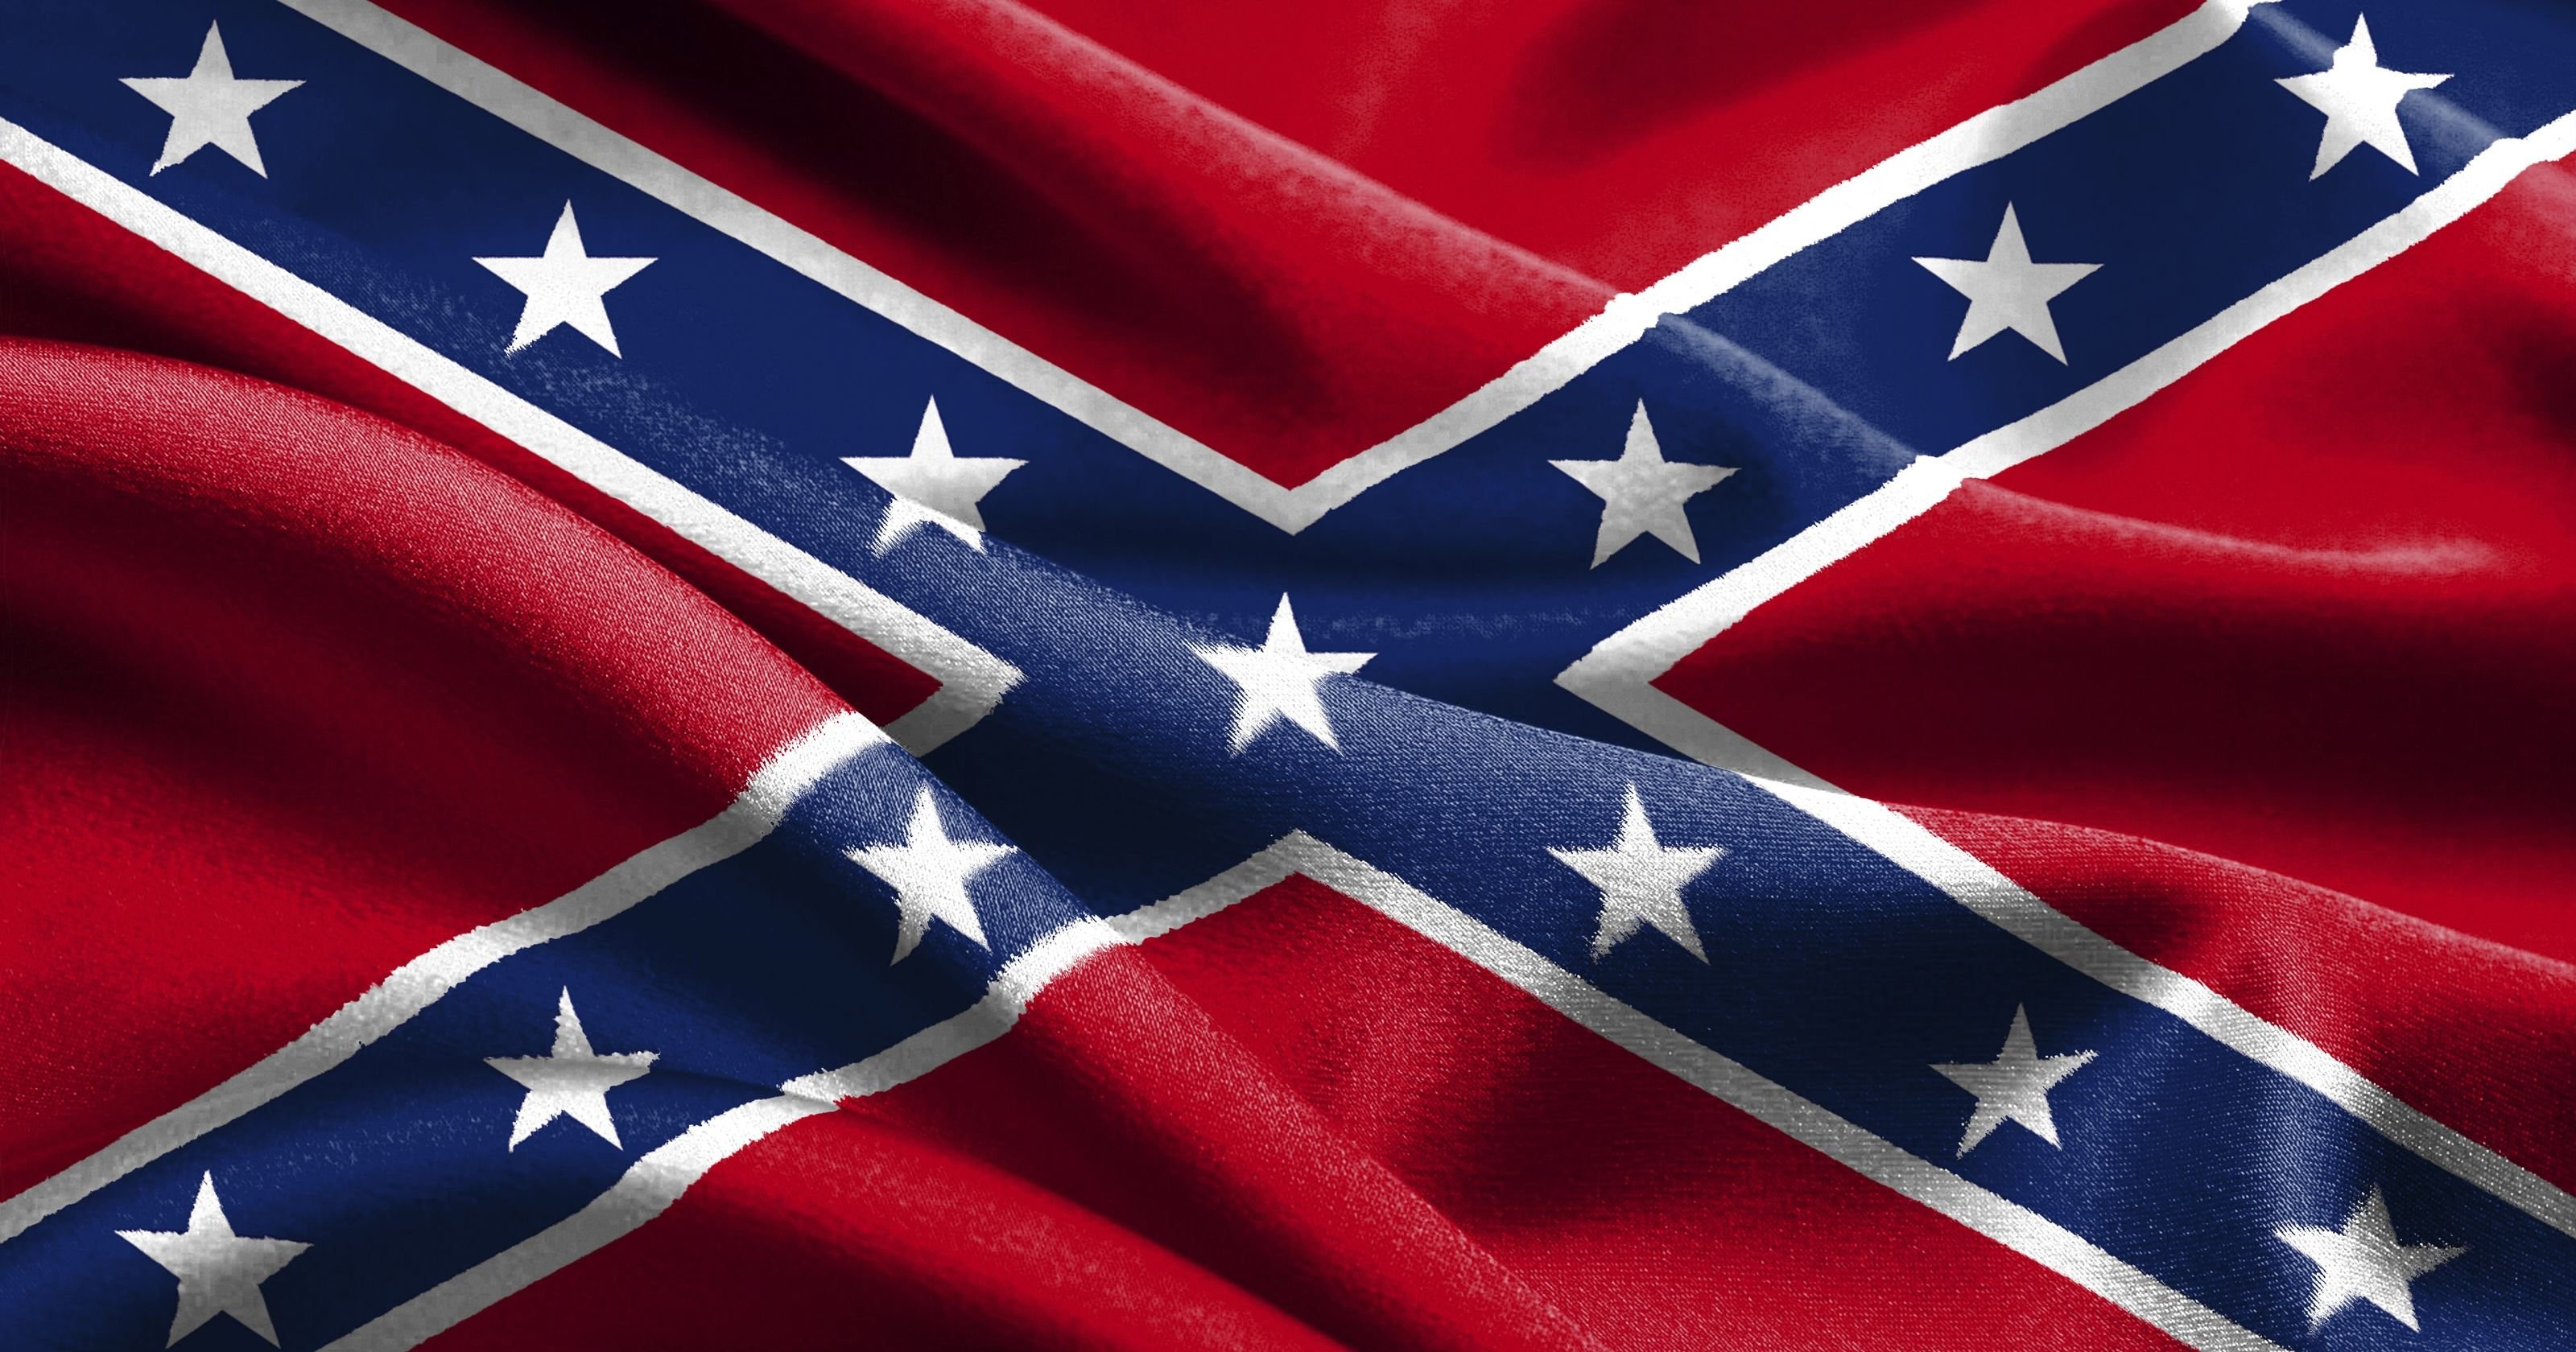 3200x1680 Confederate flag desktop wallpaper Picture Wallpaper Collections 0 HTML  code. source www wallpaperup com image resolution  px image id